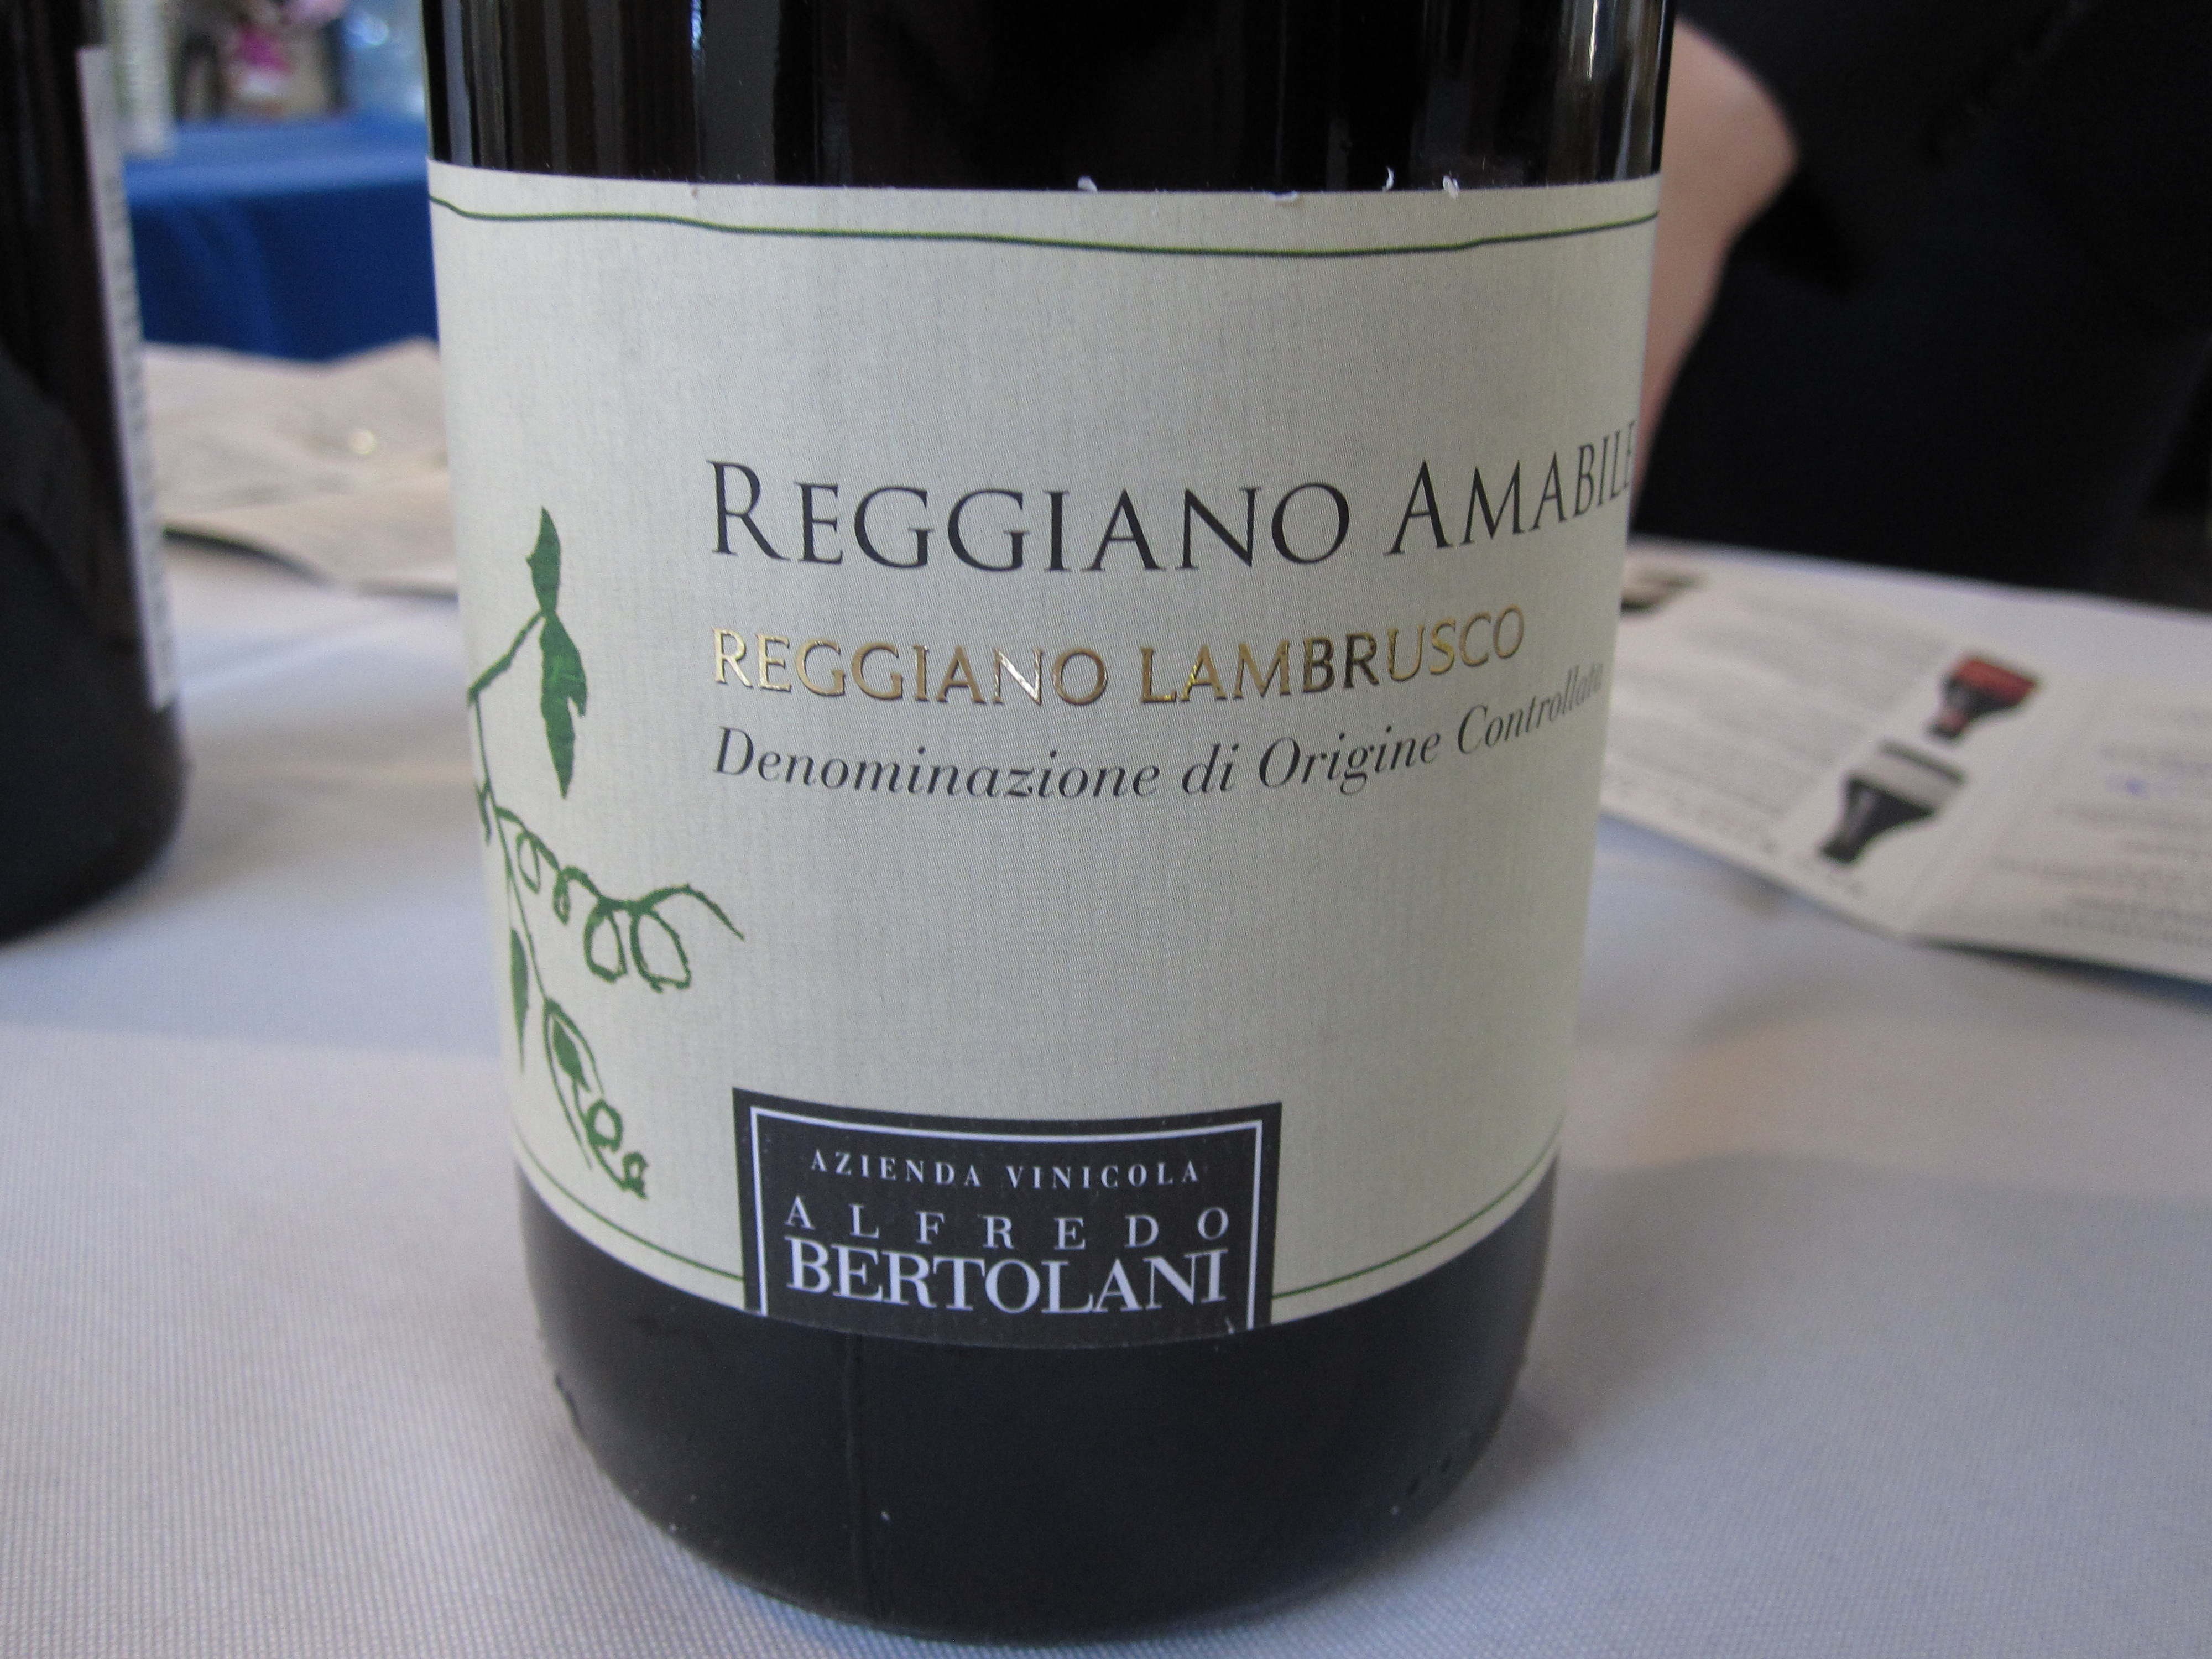 I was surprised by this sparkling red Lambrusco. It was interesting in a good way.